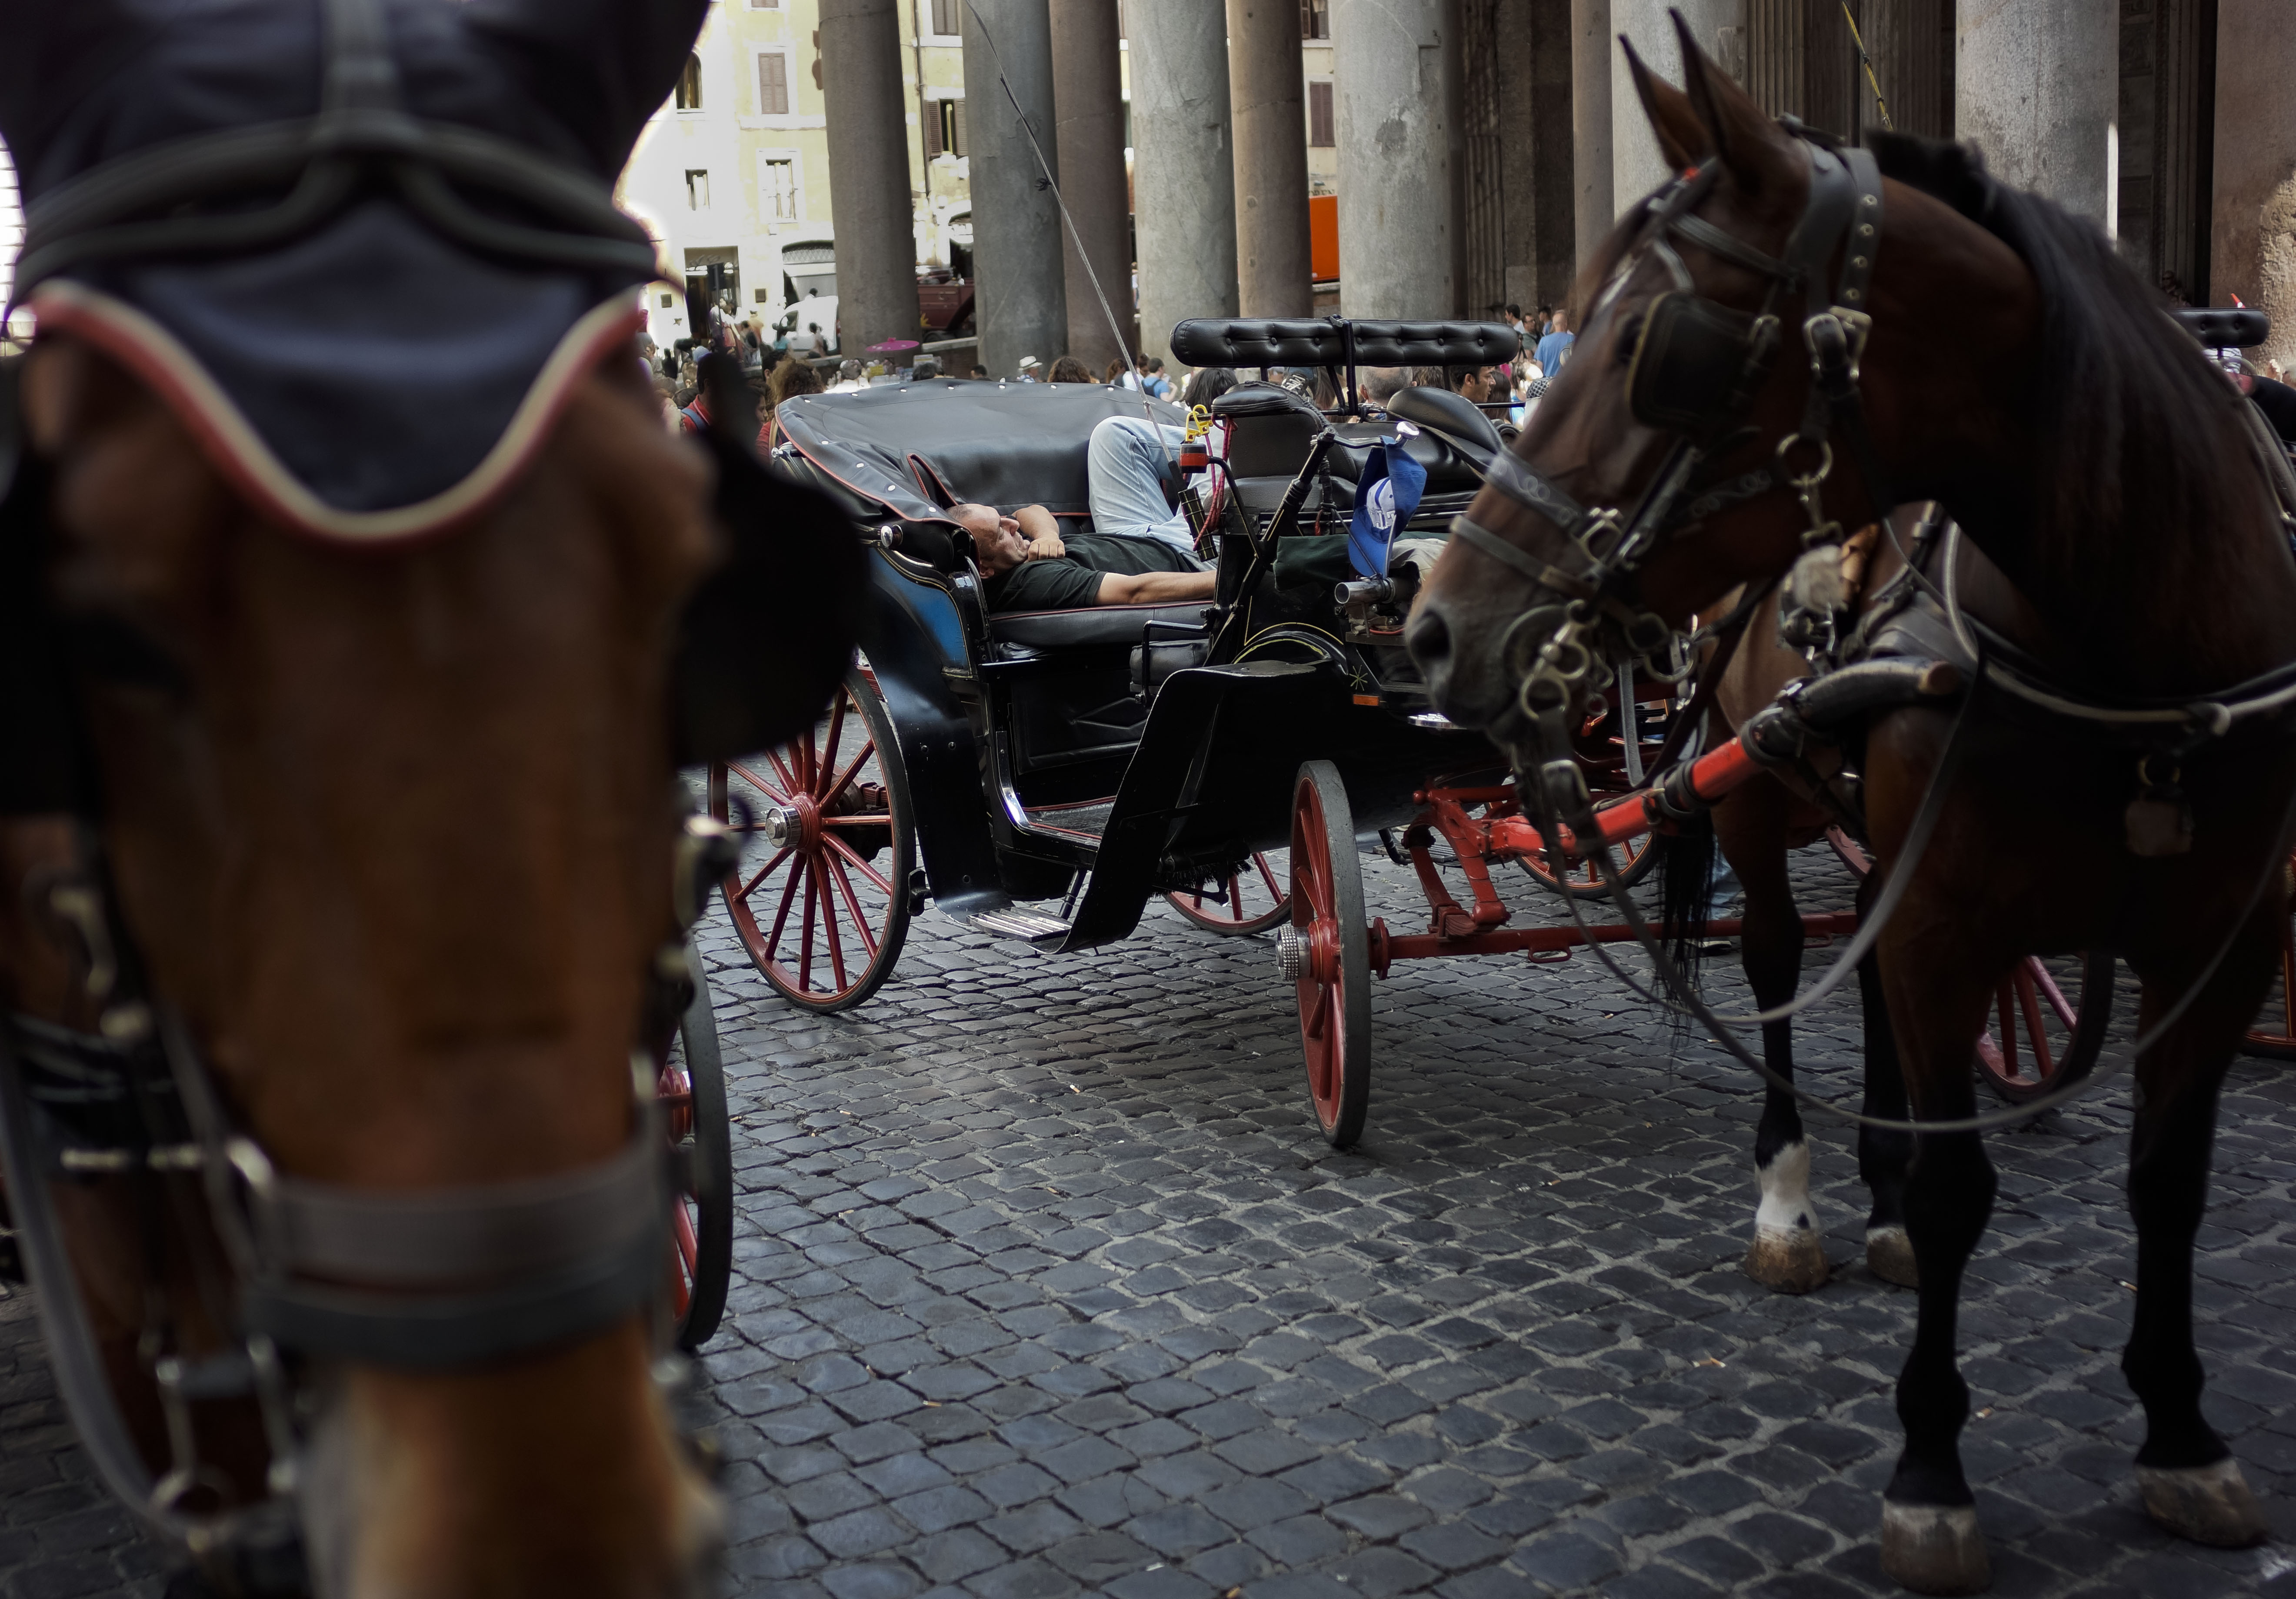 A carriage driver waits for clients in front of Rome's Pantheon, Friday, June 28, 2013. Roman horse carriages are very popular among tourists to get around town, especially in the Summer. (AP Photo/Domenico Stinellis)